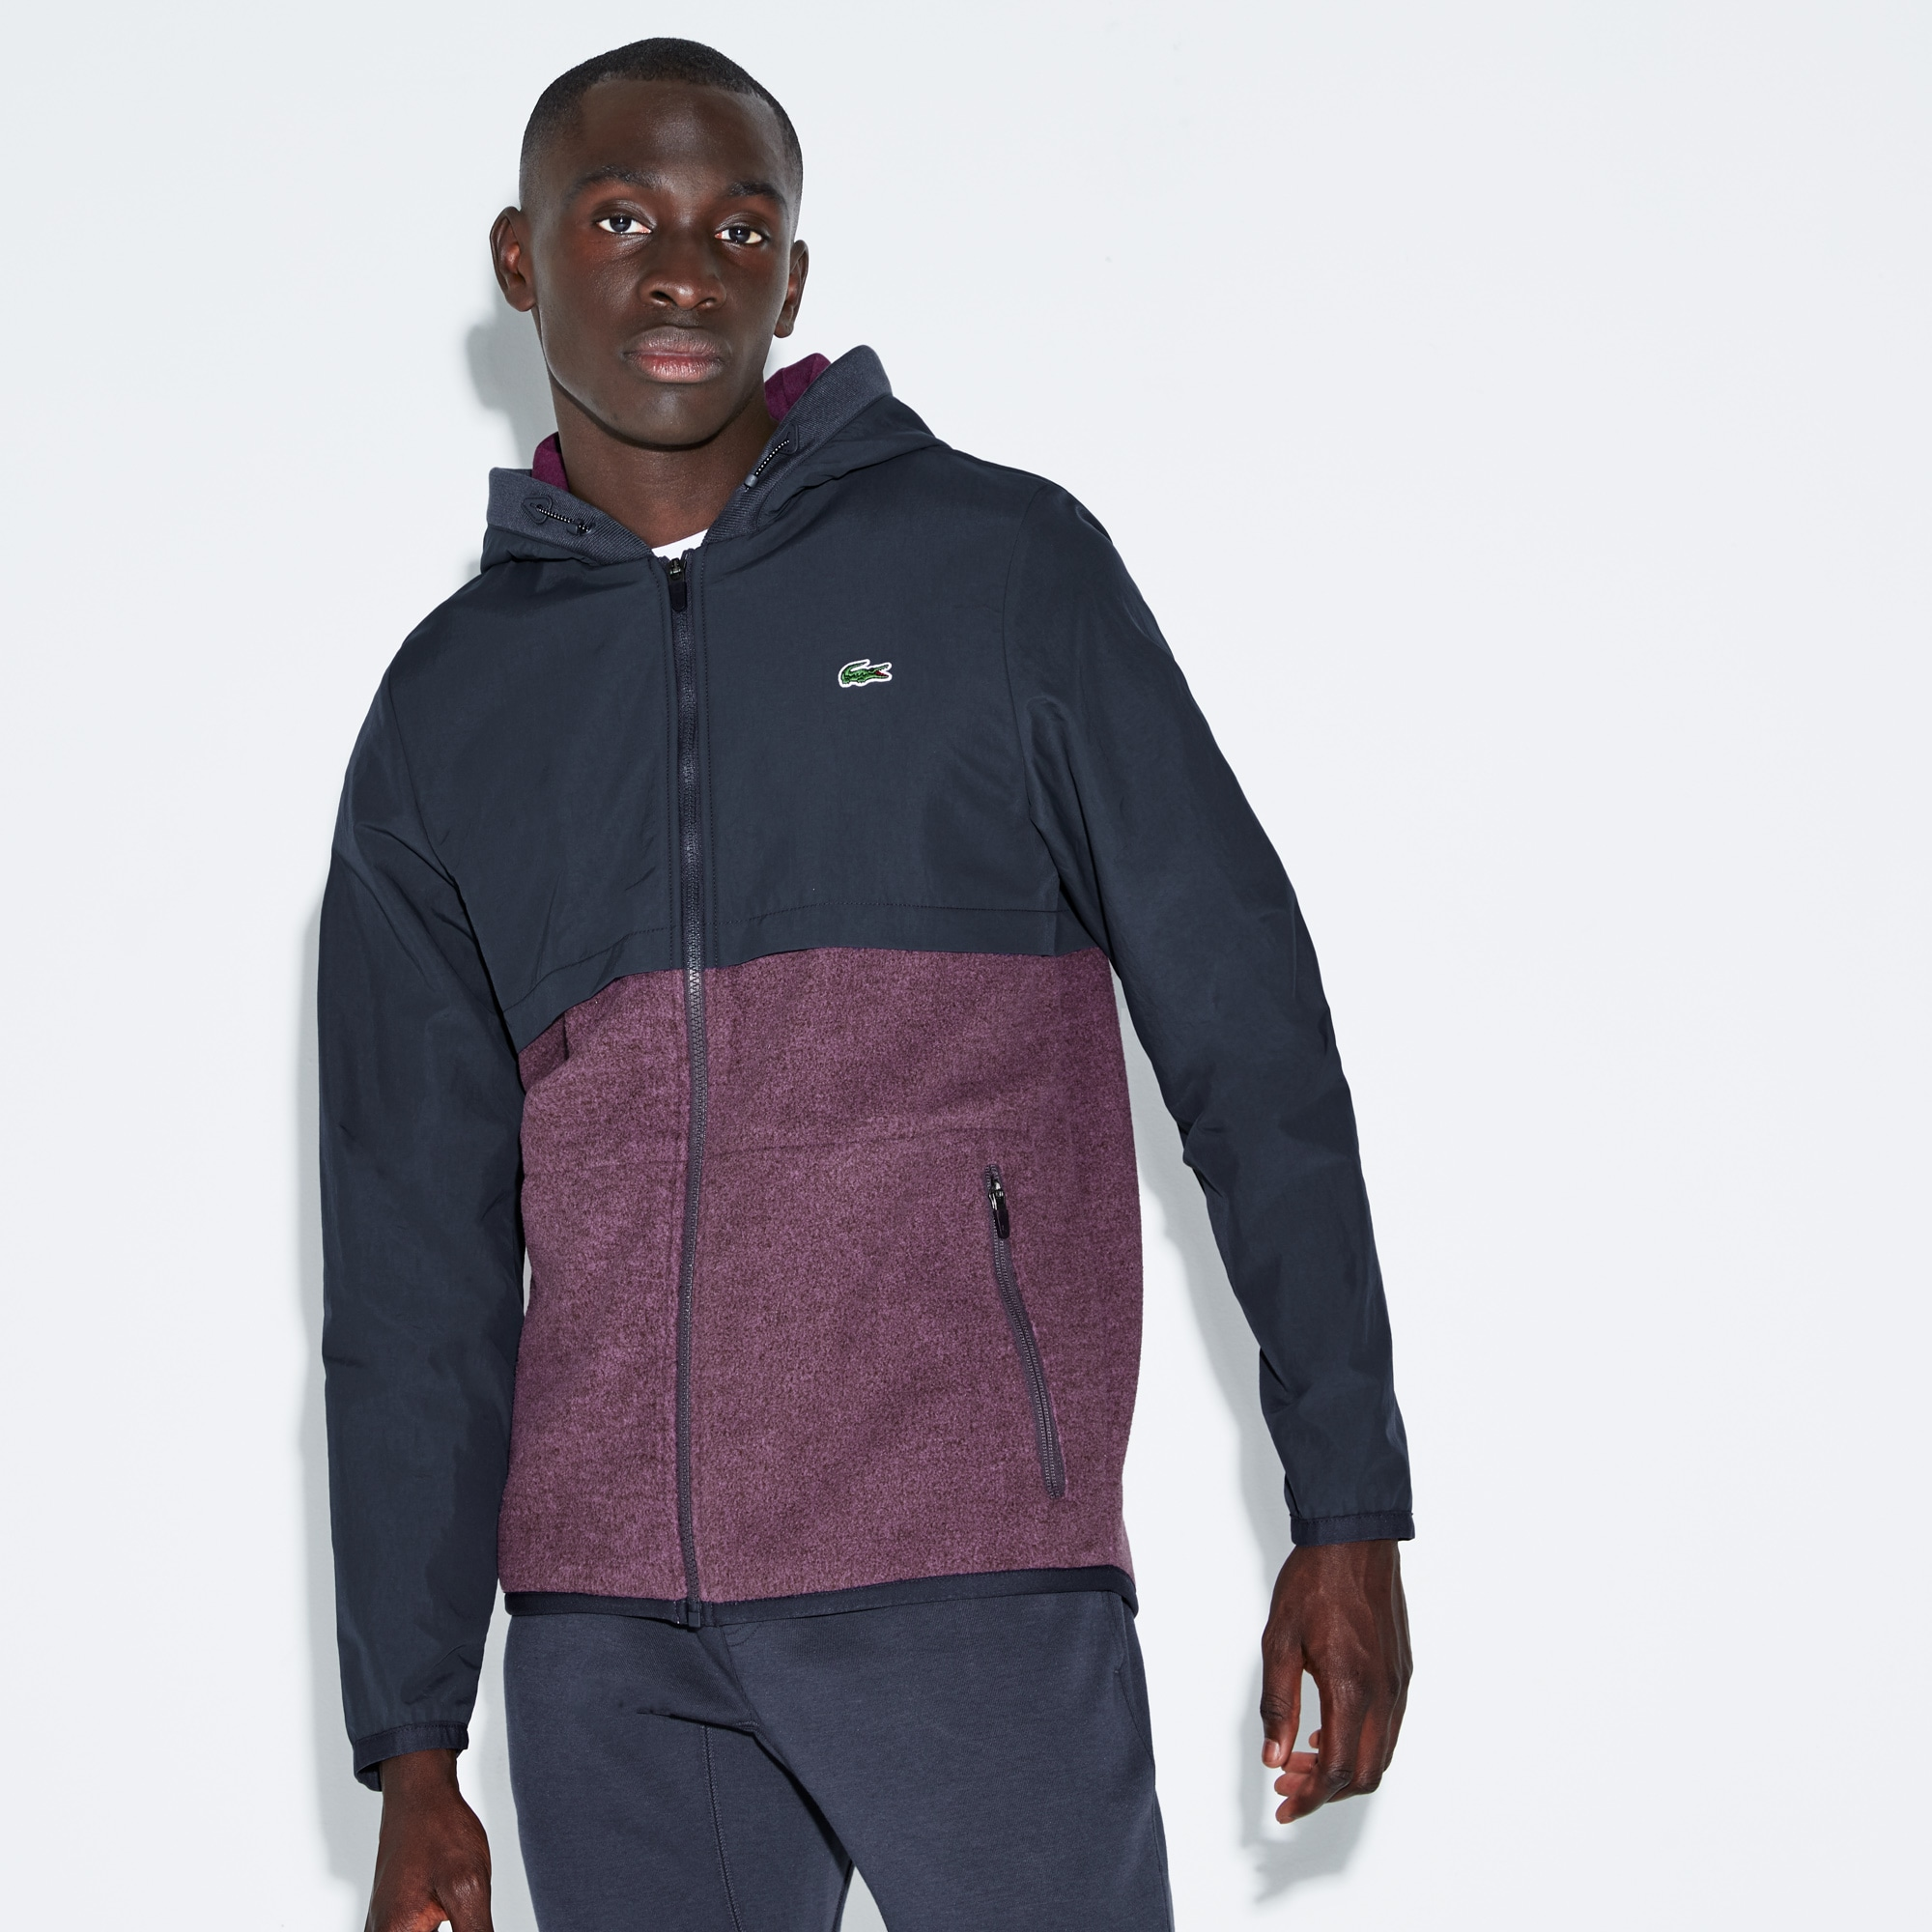 Men's Lacoste SPORT Hooded Bi-Material Colorblock Tennis Jacket